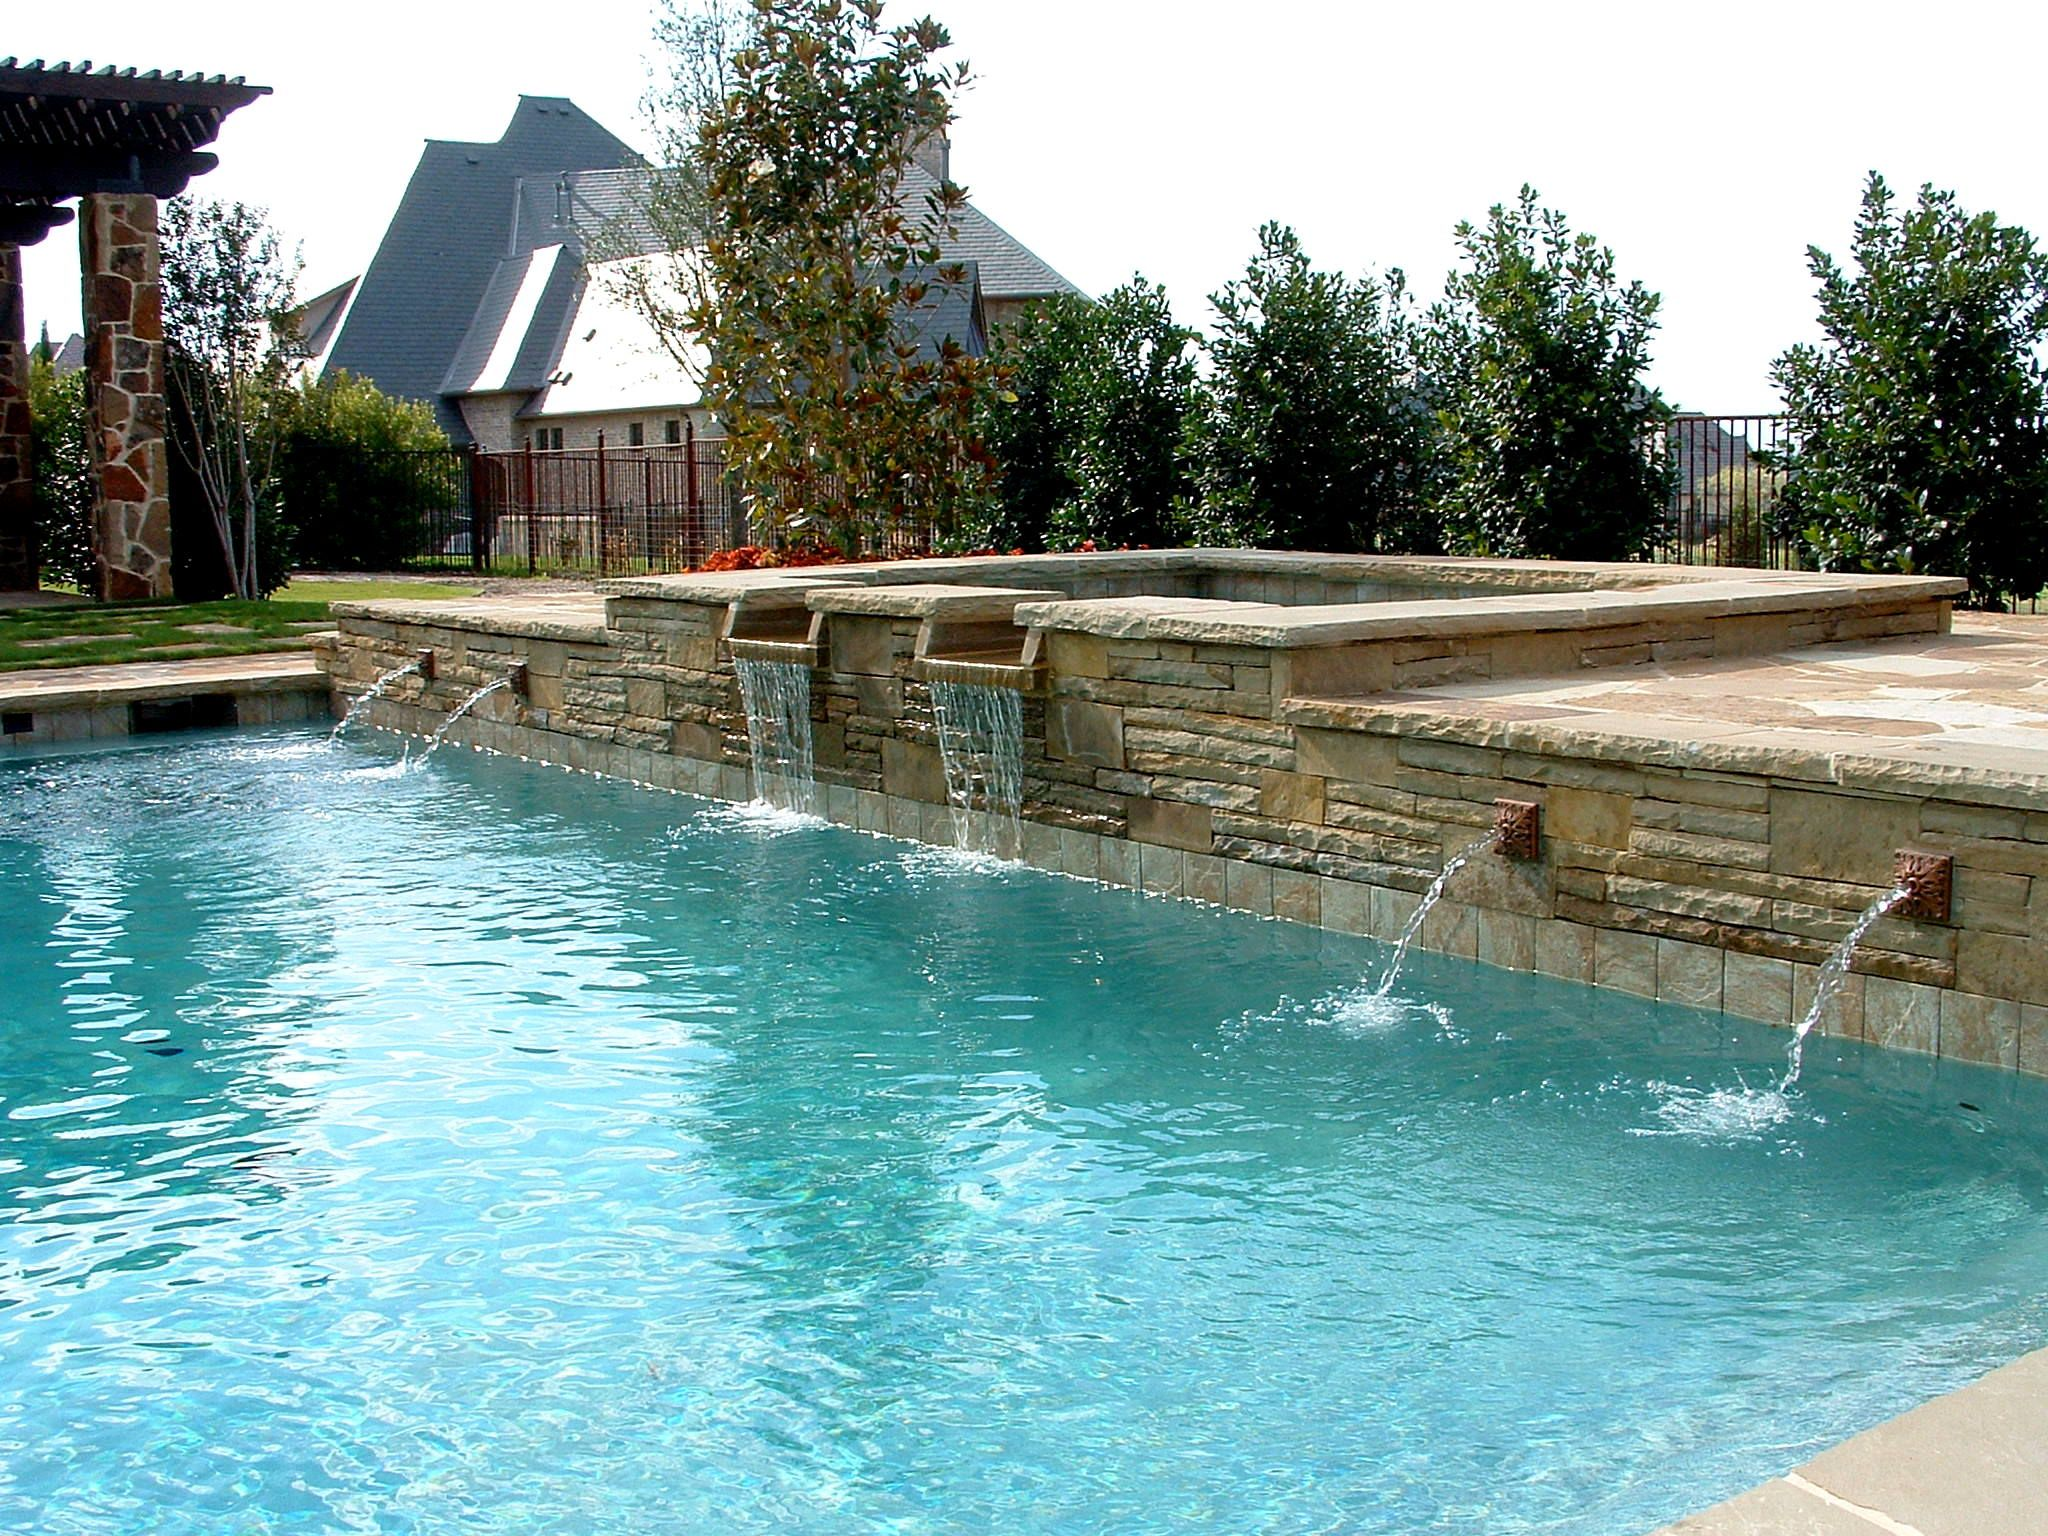 Formal swimming pool with raised spa rosetta fountains for Water pool design